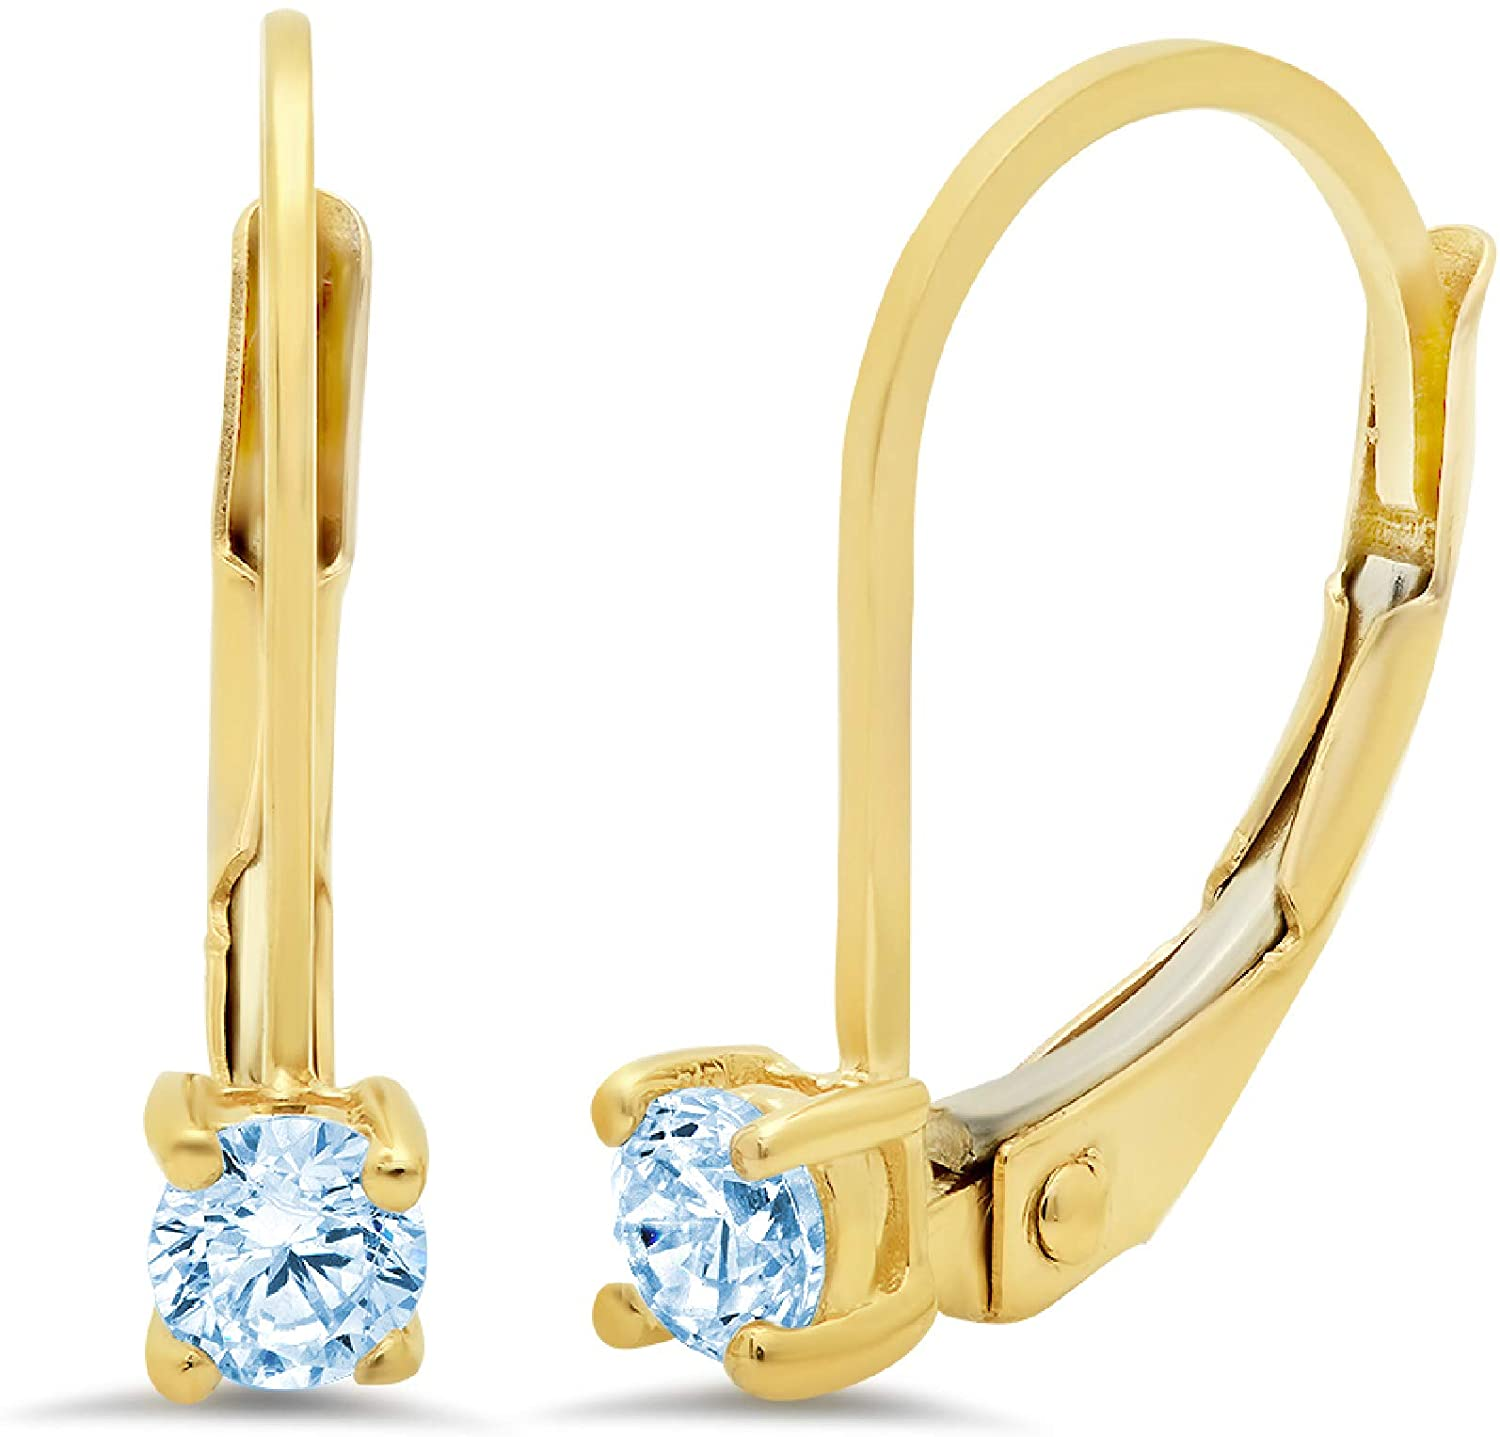 0.20 ct Brilliant Round Cut Solitaire Natural Sky blue Topaz Gem Stone VVS1 Ideal Anniversary gift Leverback Drop Dangle Earrings Real Solid 14k Yellow Gold, Clara Pucci